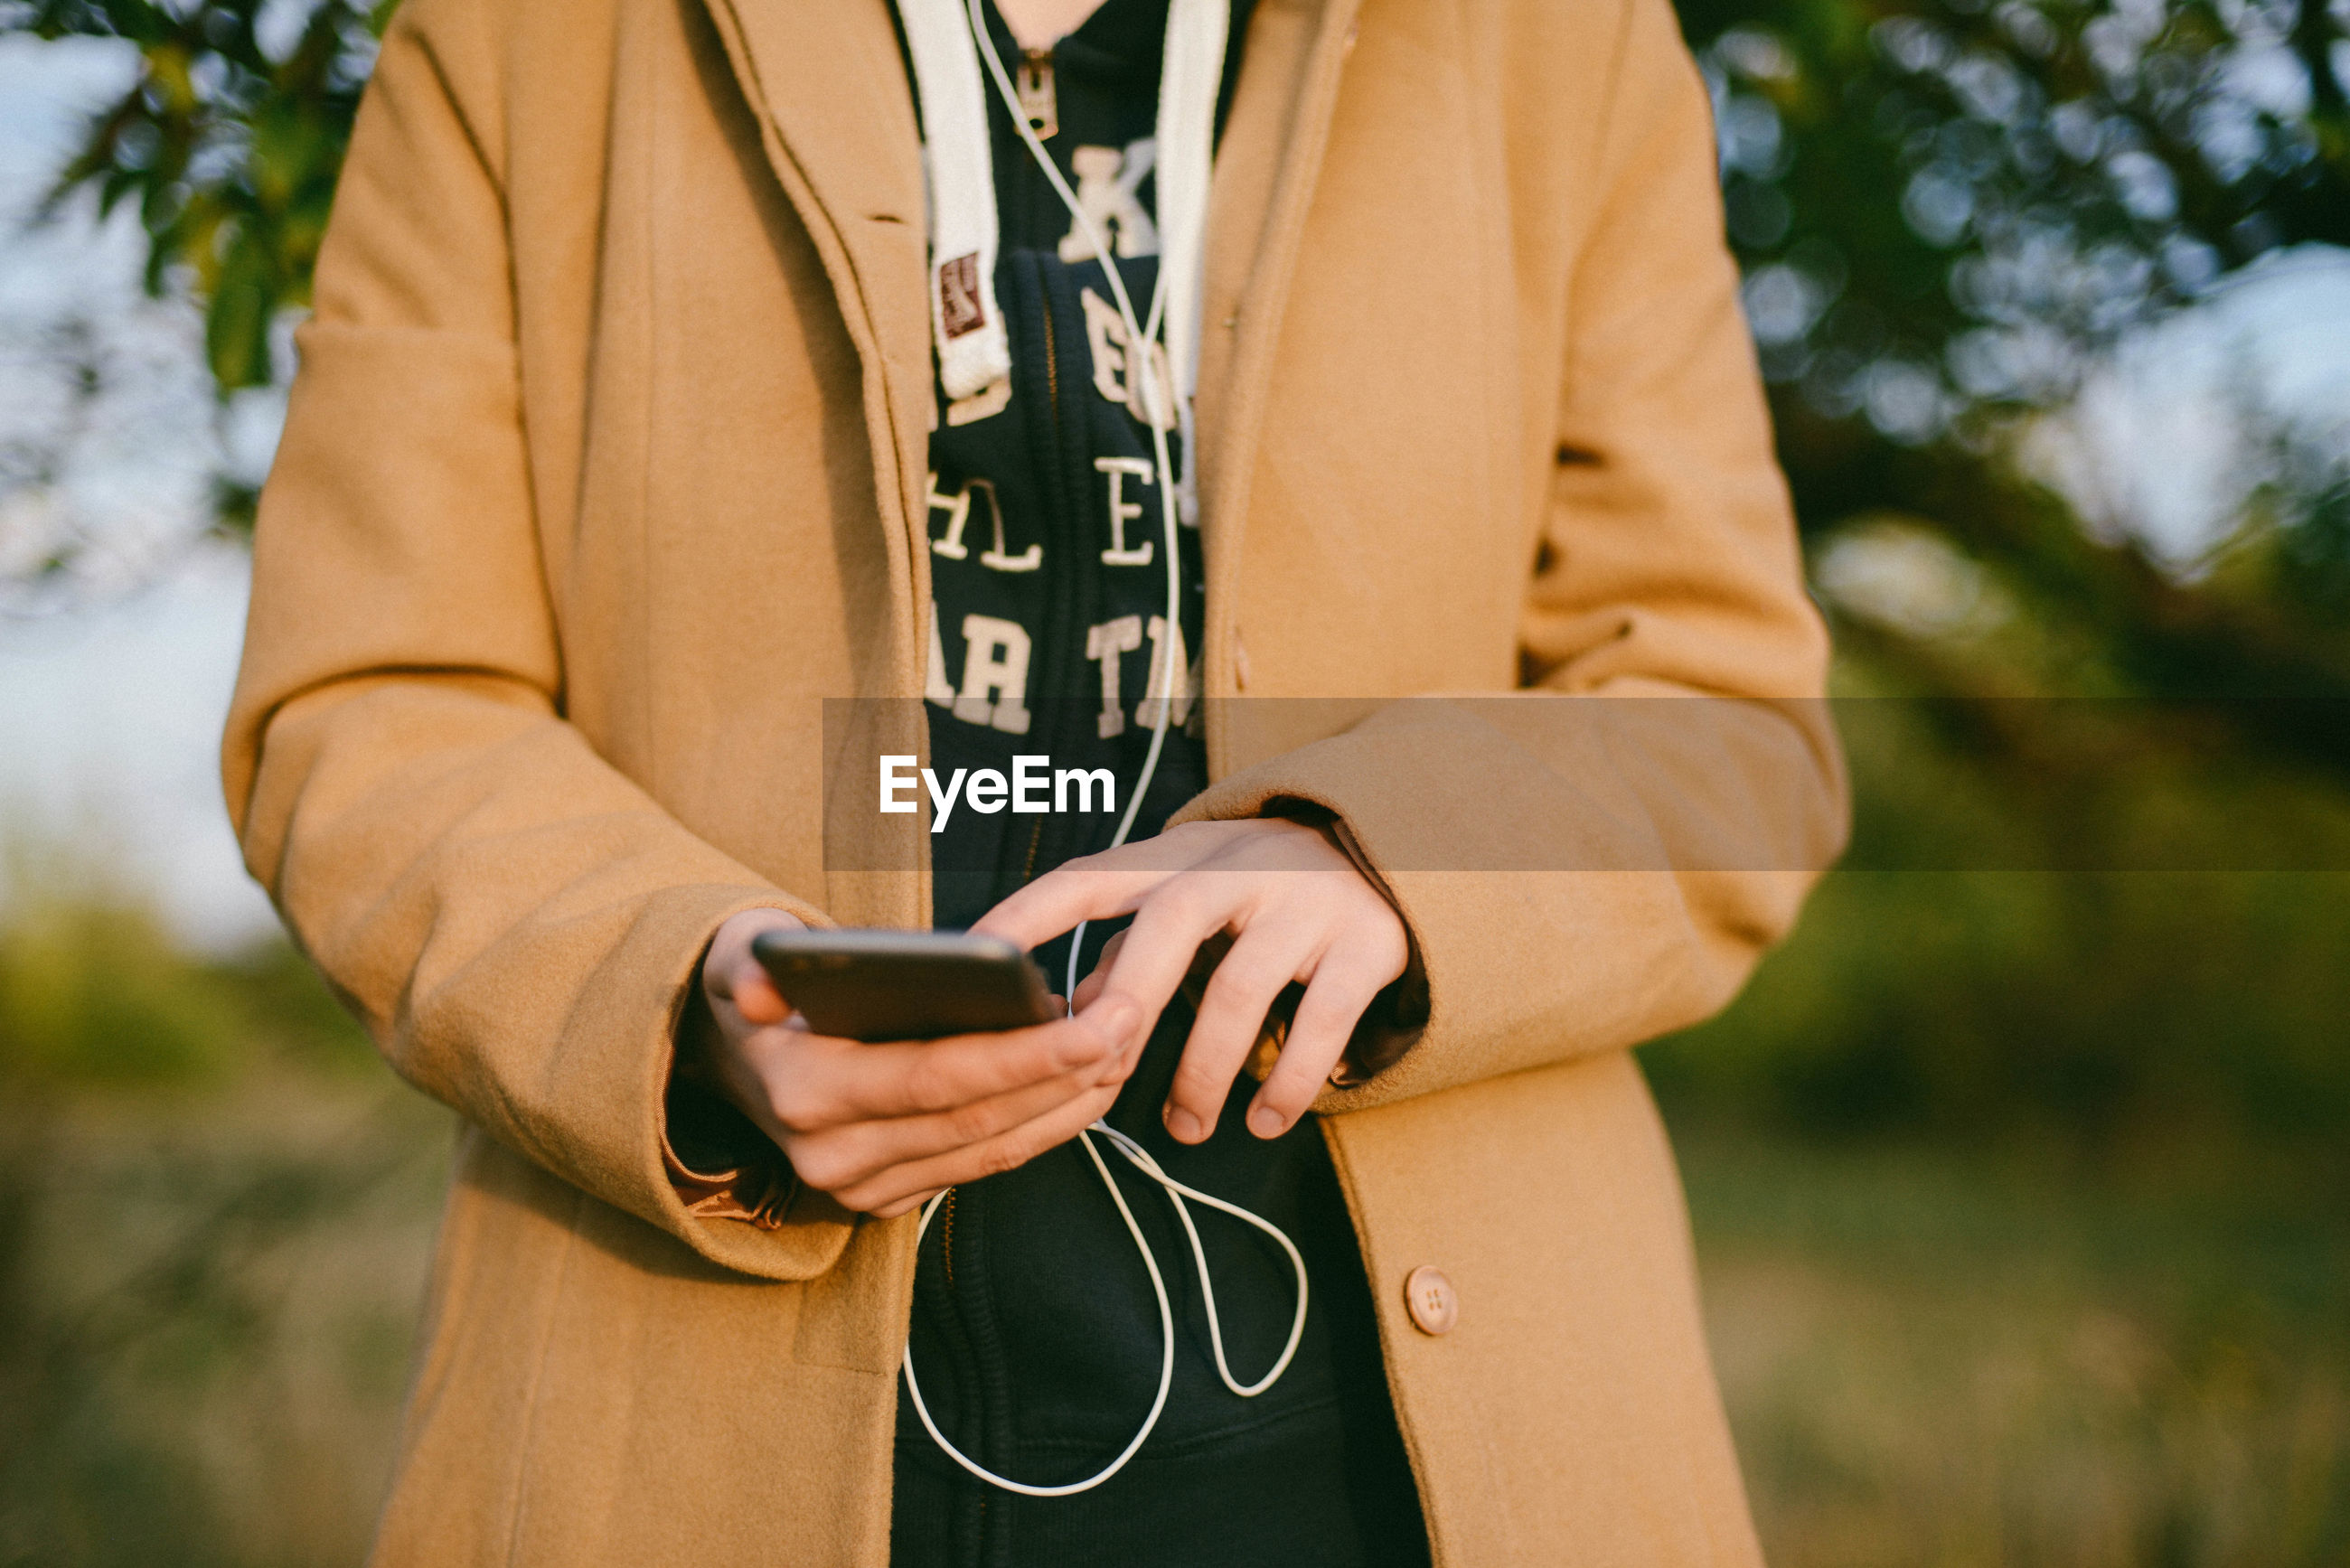 Midsection of woman using phone while standing outdoors